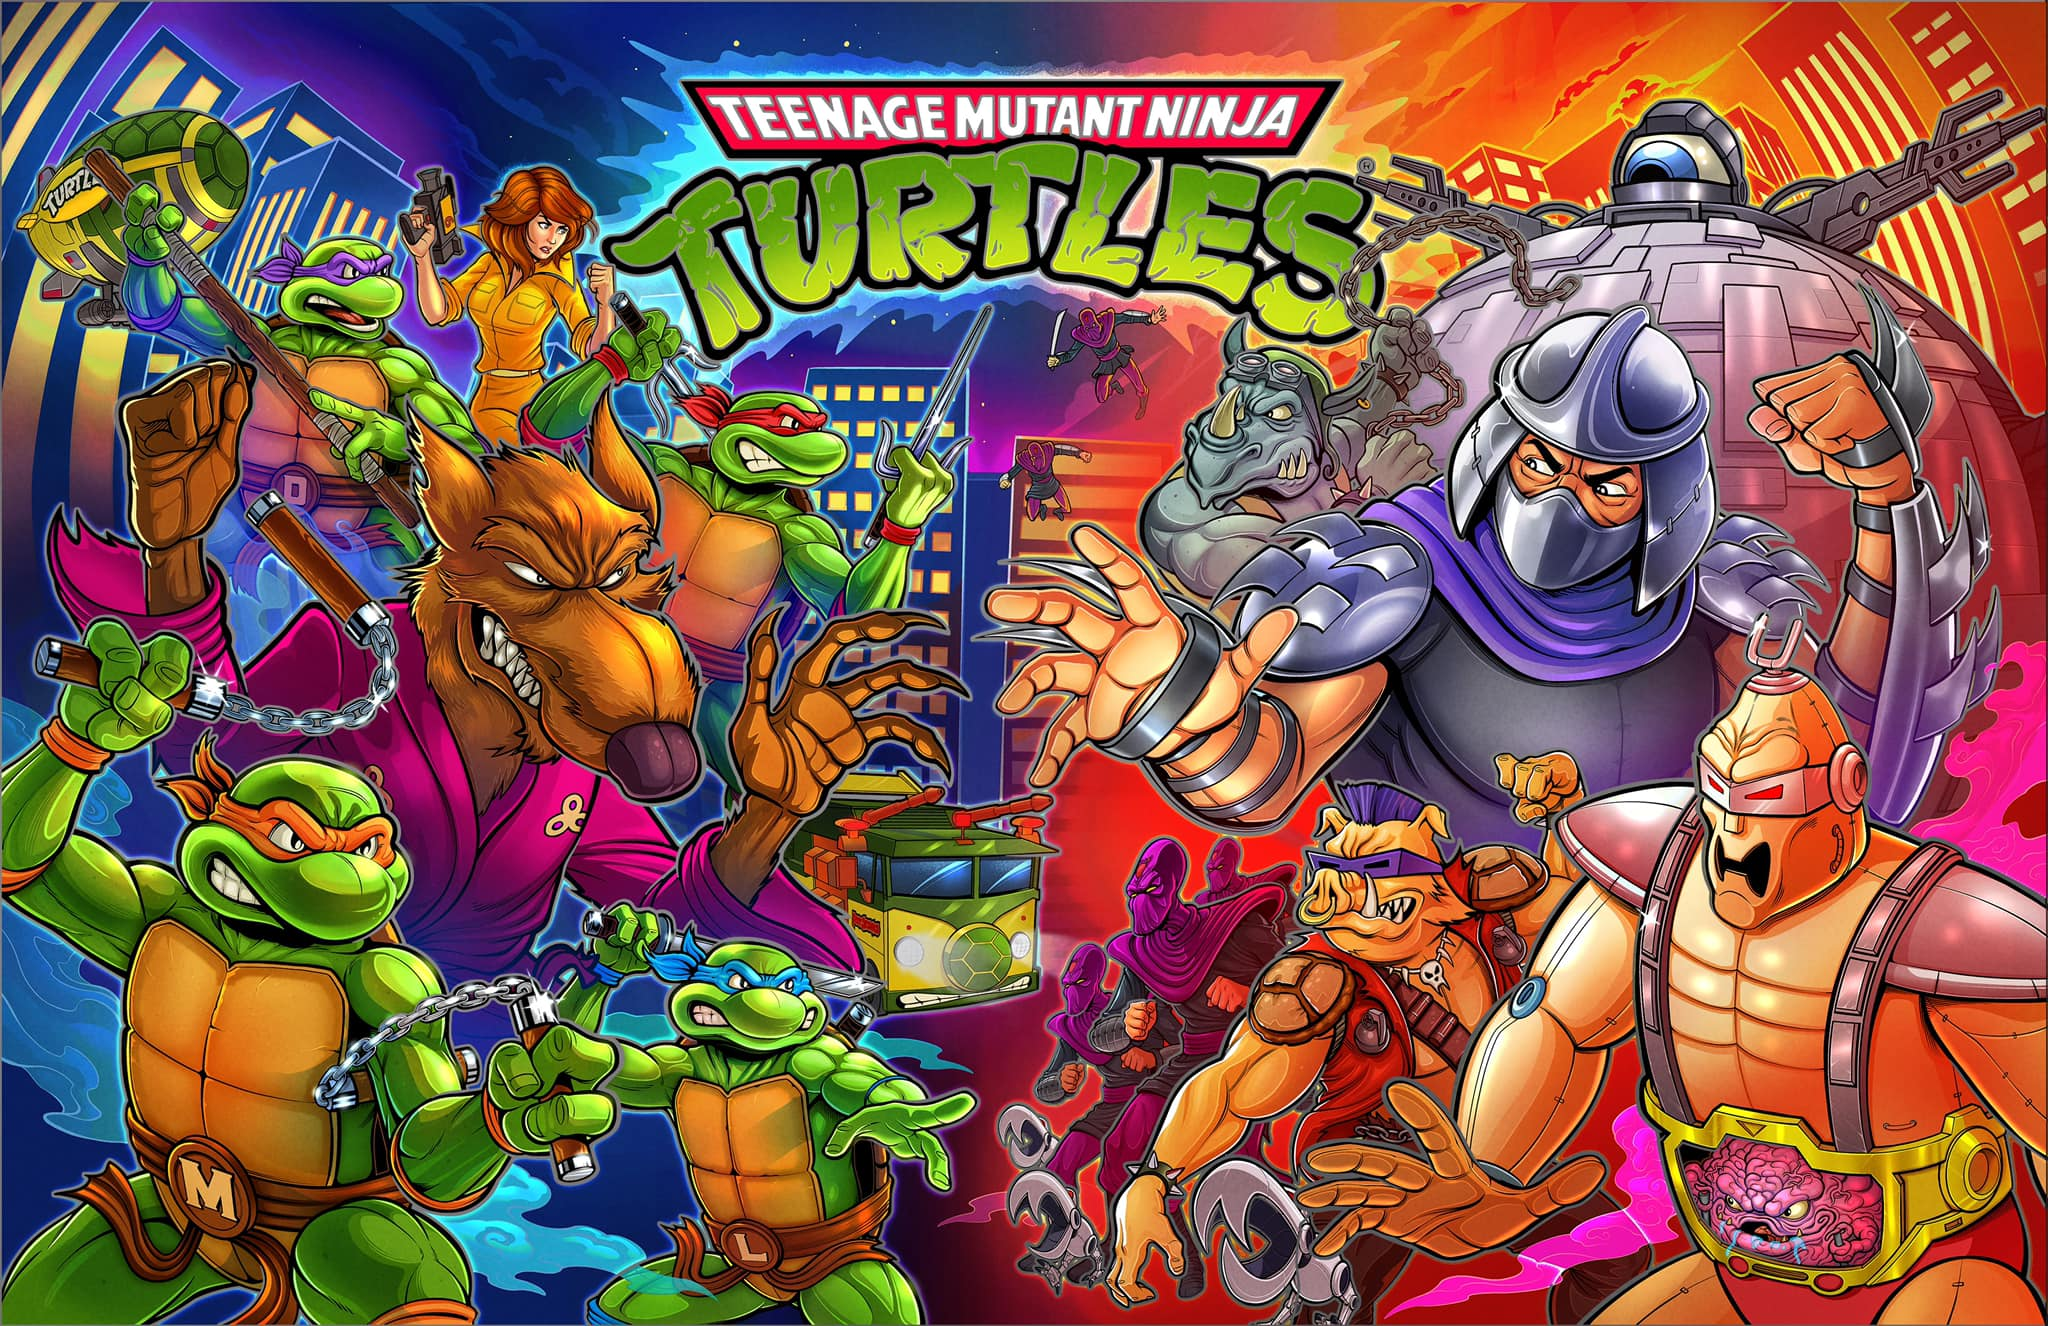 Cowabunga Stern Pinball Announces New Teenage Mutant Ninja Turtles Pinball Machines Icon Vs Icon